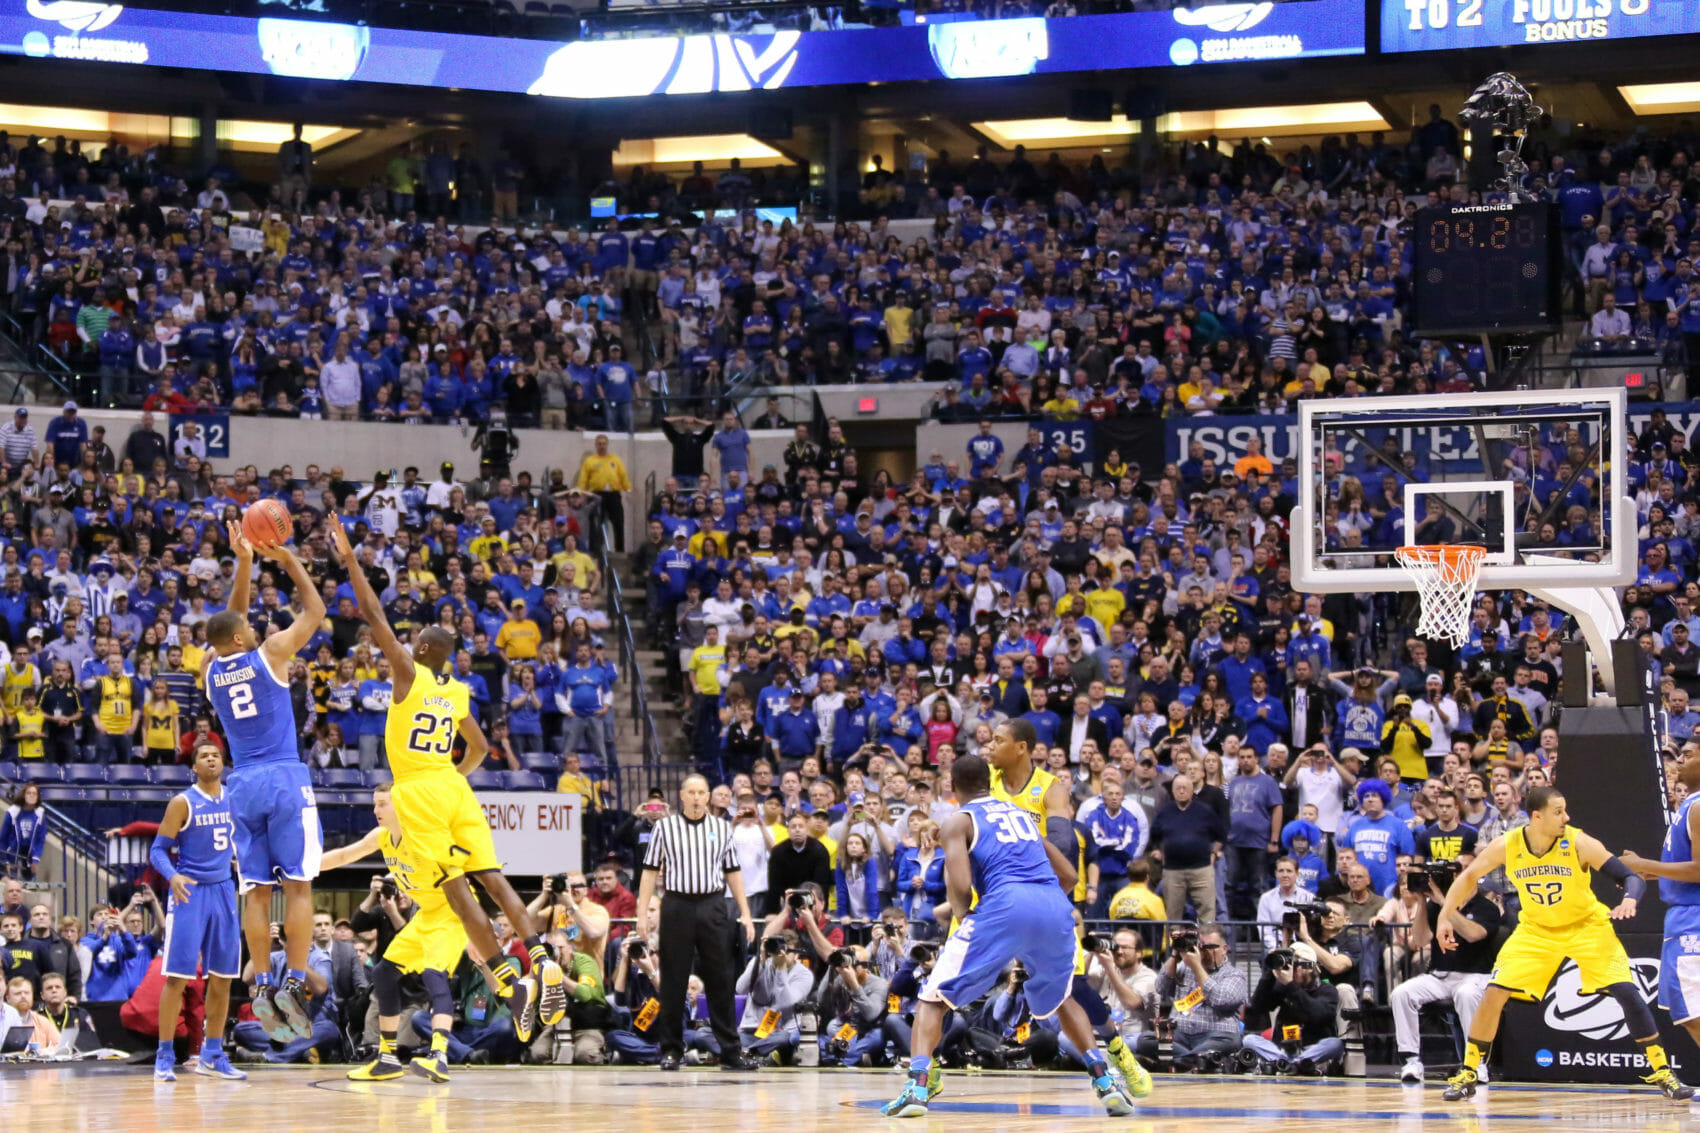 Kentucky 75, Michigan 72-41